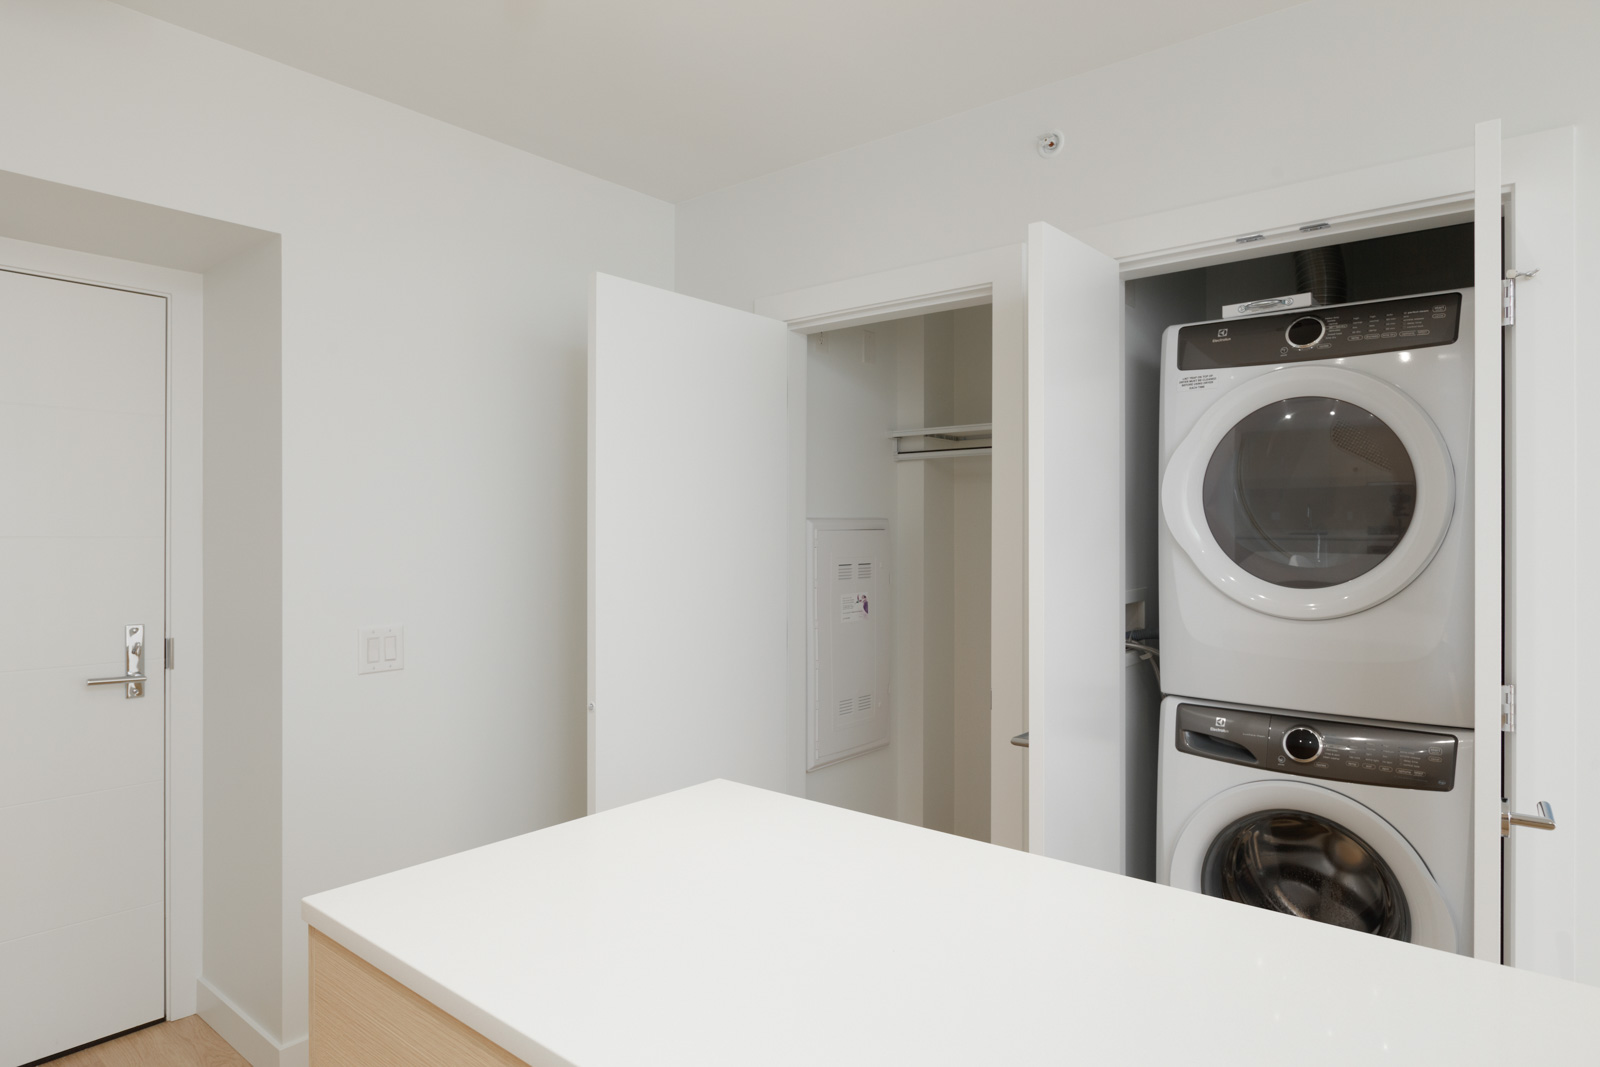 Storage closet and washer and dryer in unit by the entrance of the new condo in Coquitlam managed by Birds Nest Properties in Vancouver